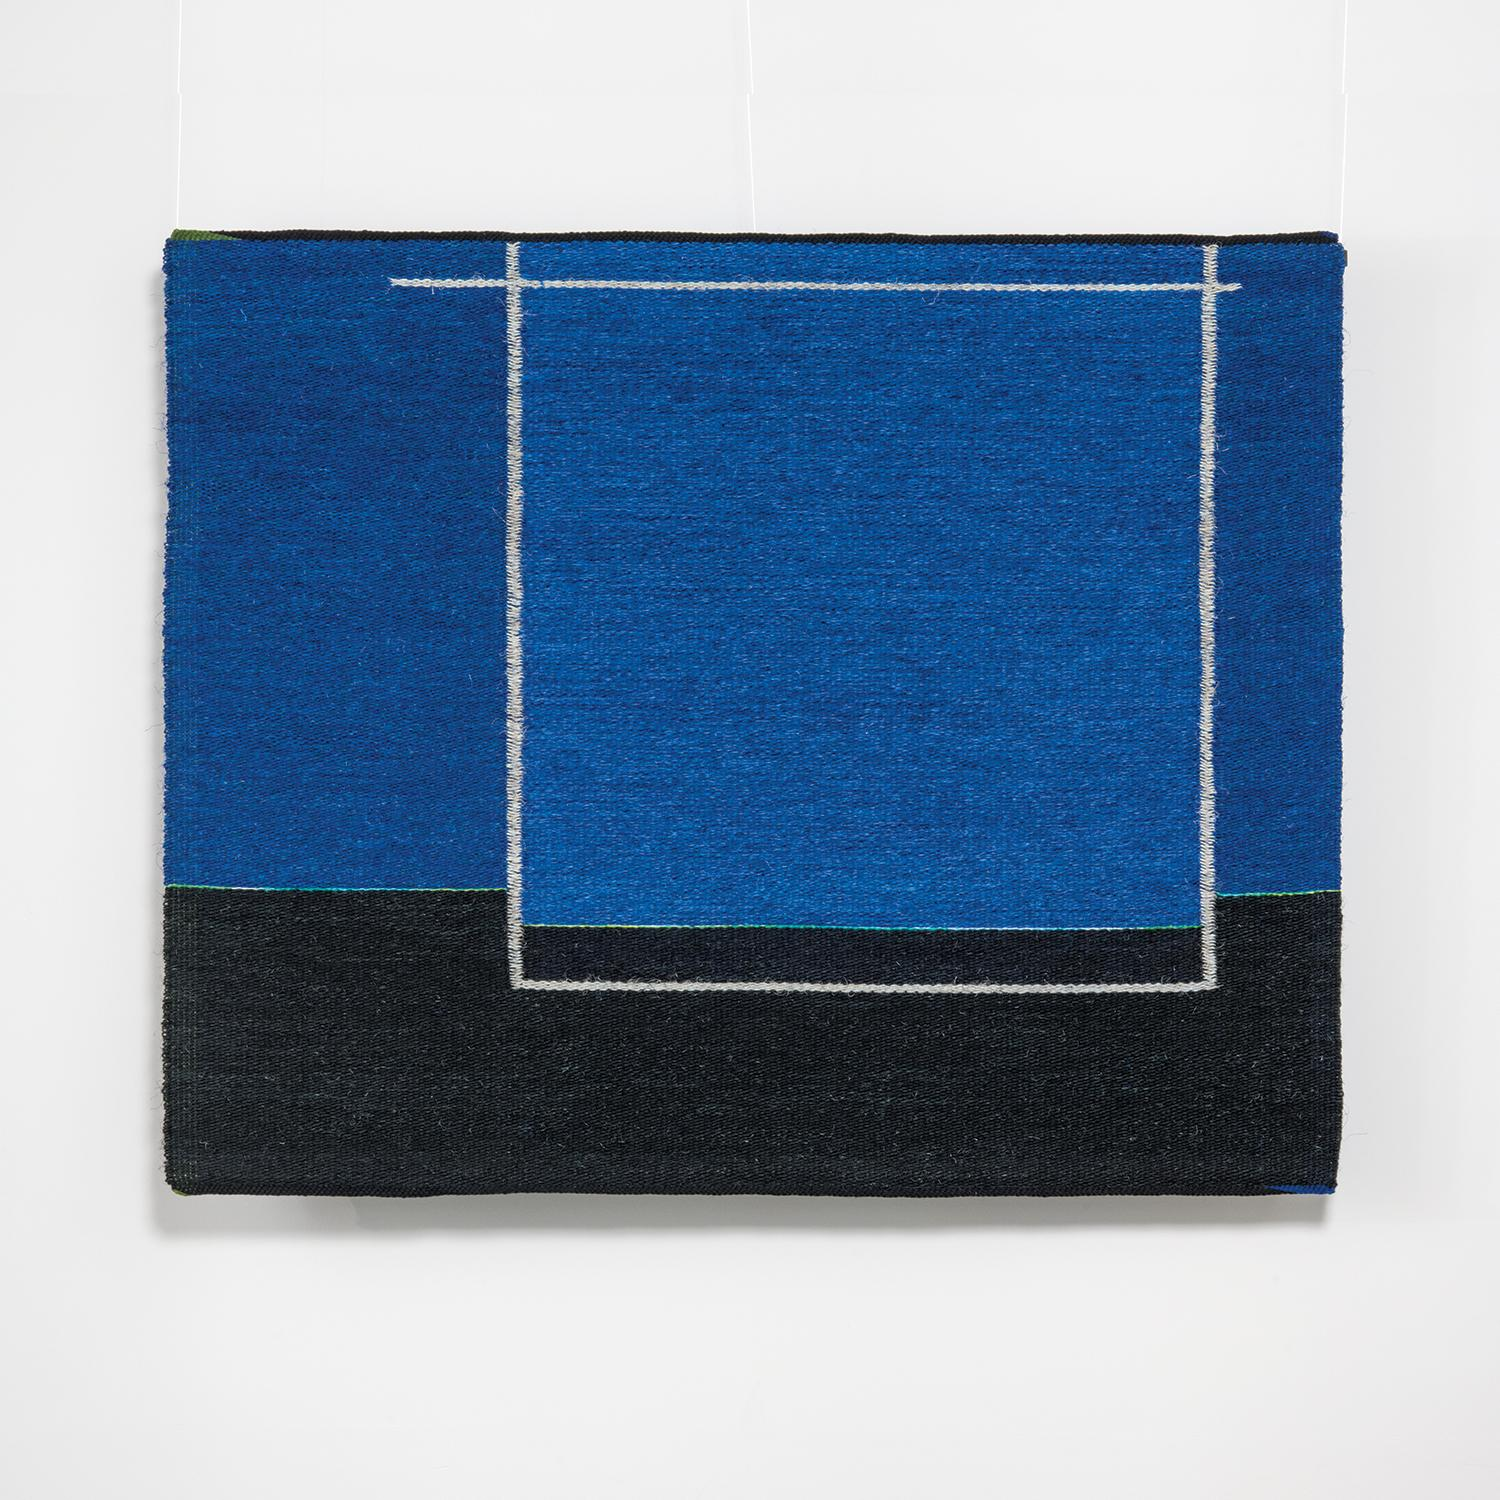 Thin Green Horizon, Contemporary Geometric Tapestry by Gudrun Pagter